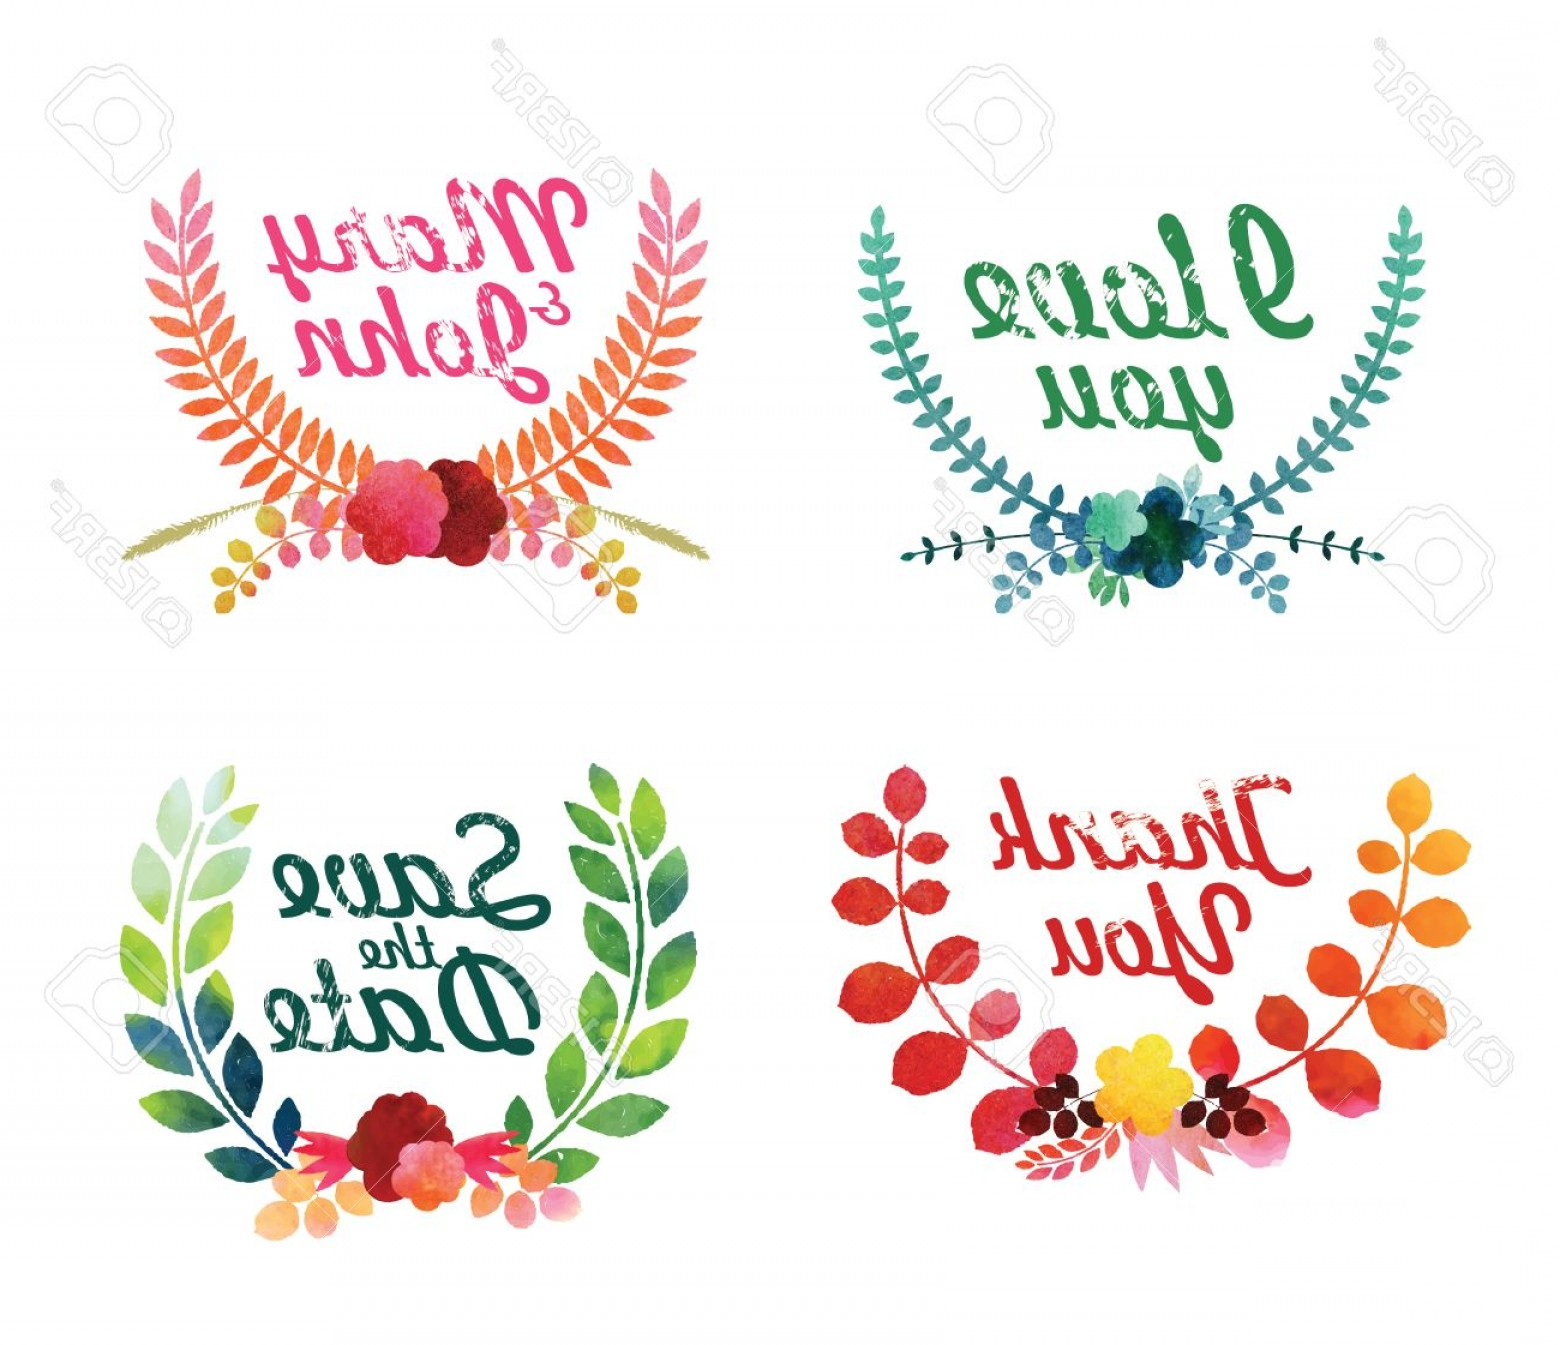 Flower Elements Vector: Photostock Vector Watercolor Laurel Wreaths Decorative Floral Elements Vector Illustration